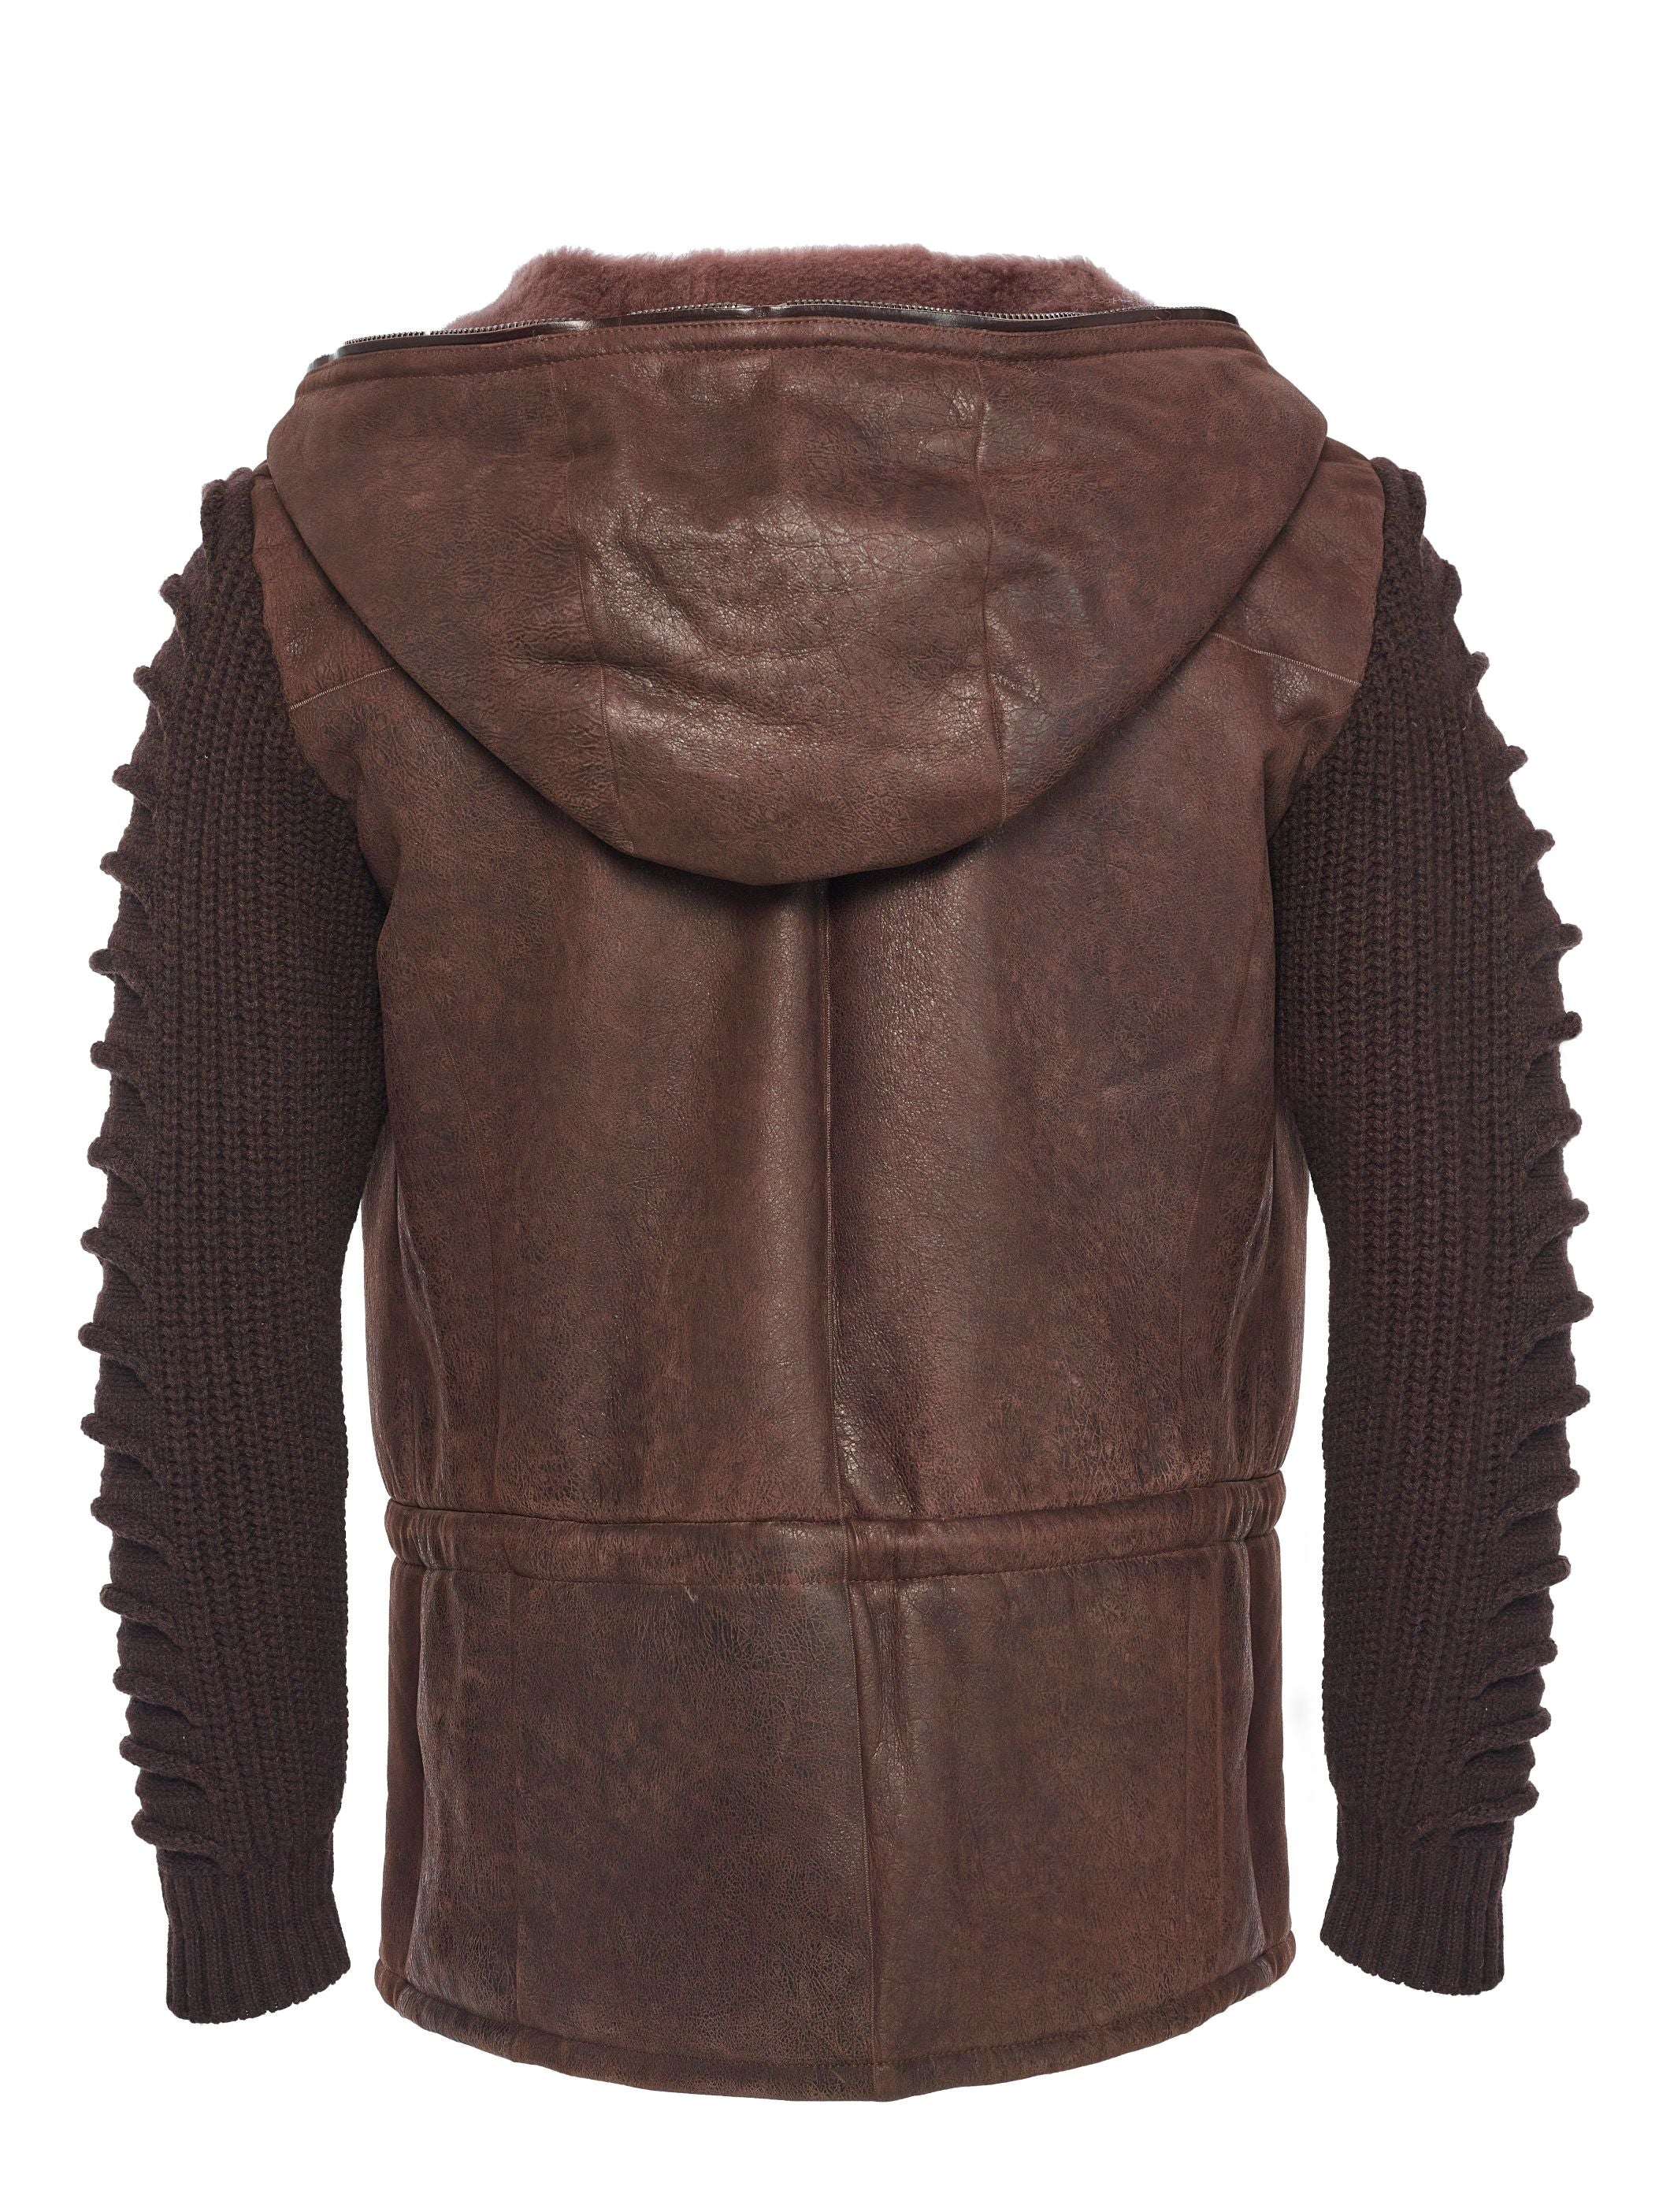 Back side ultra-light weight Spanish shearling with cashmere louvered-knit sleeves